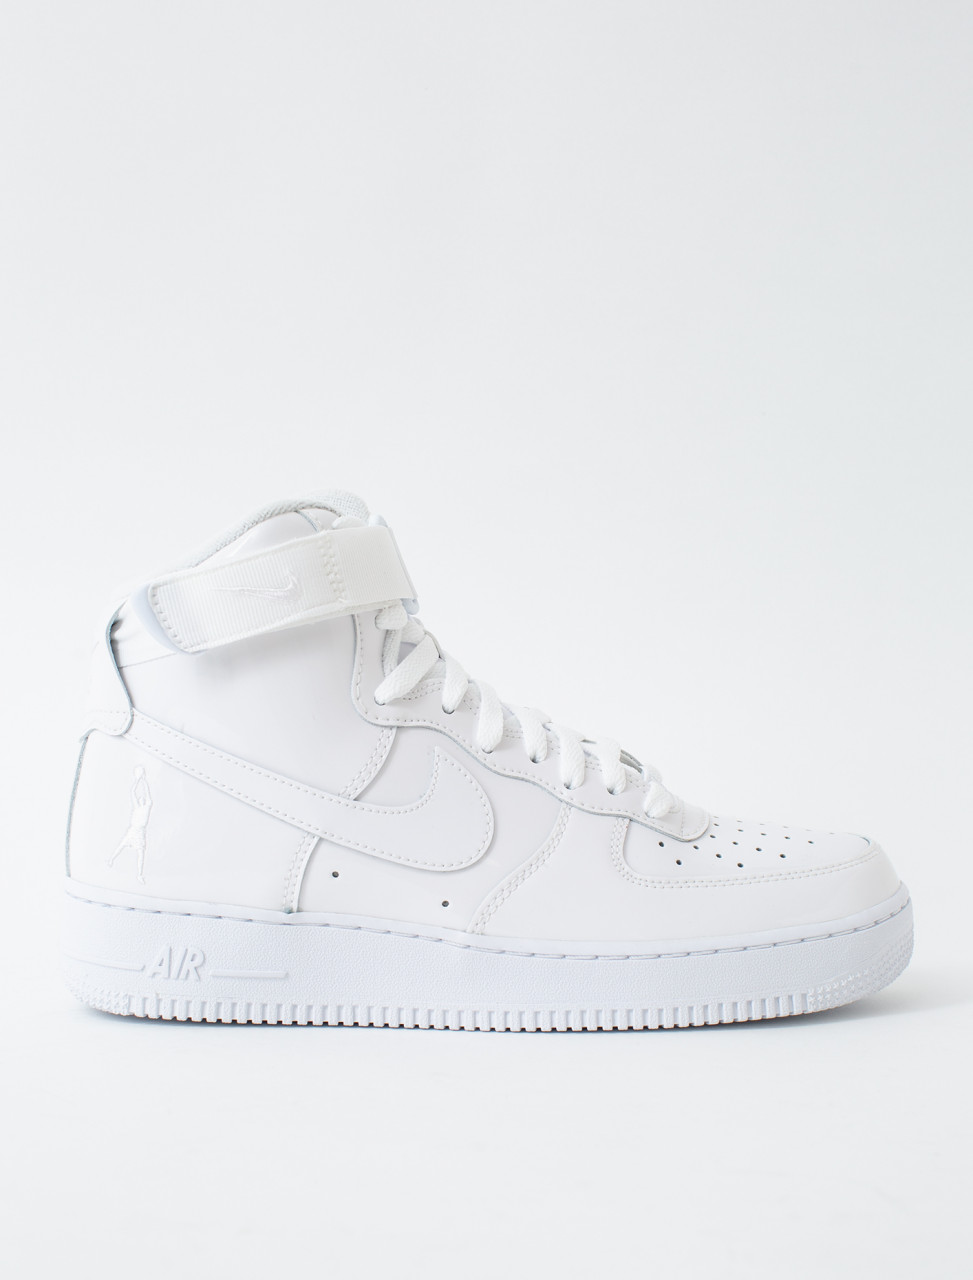 Nike Air Force 1 Low Retro QS | Subtype Store